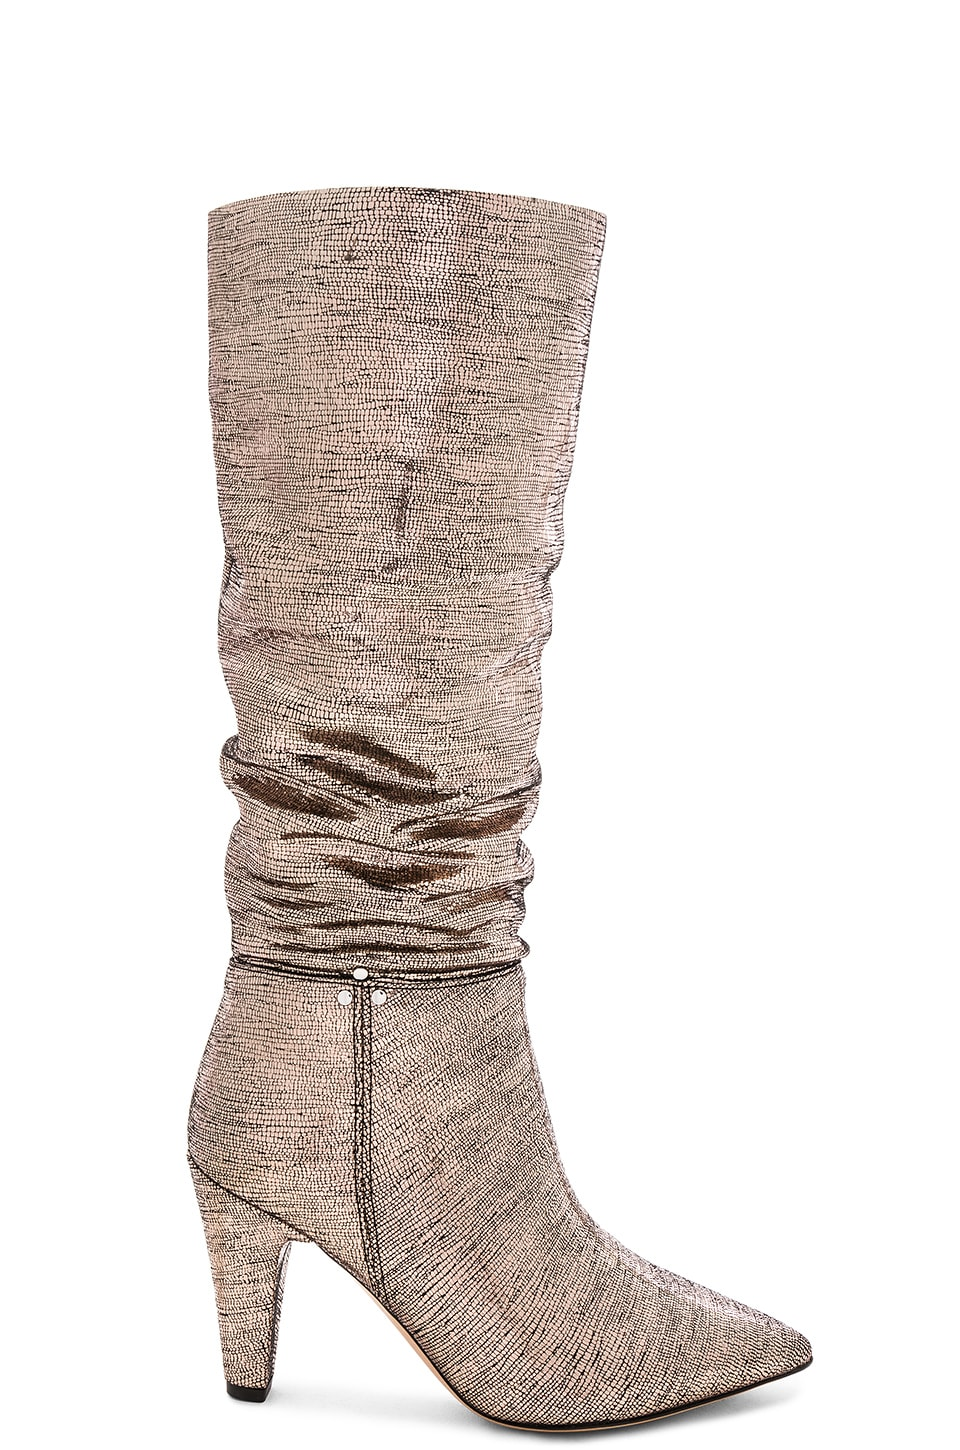 Jerome Dreyfuss Sandie 95 Boot in Lame Champagne